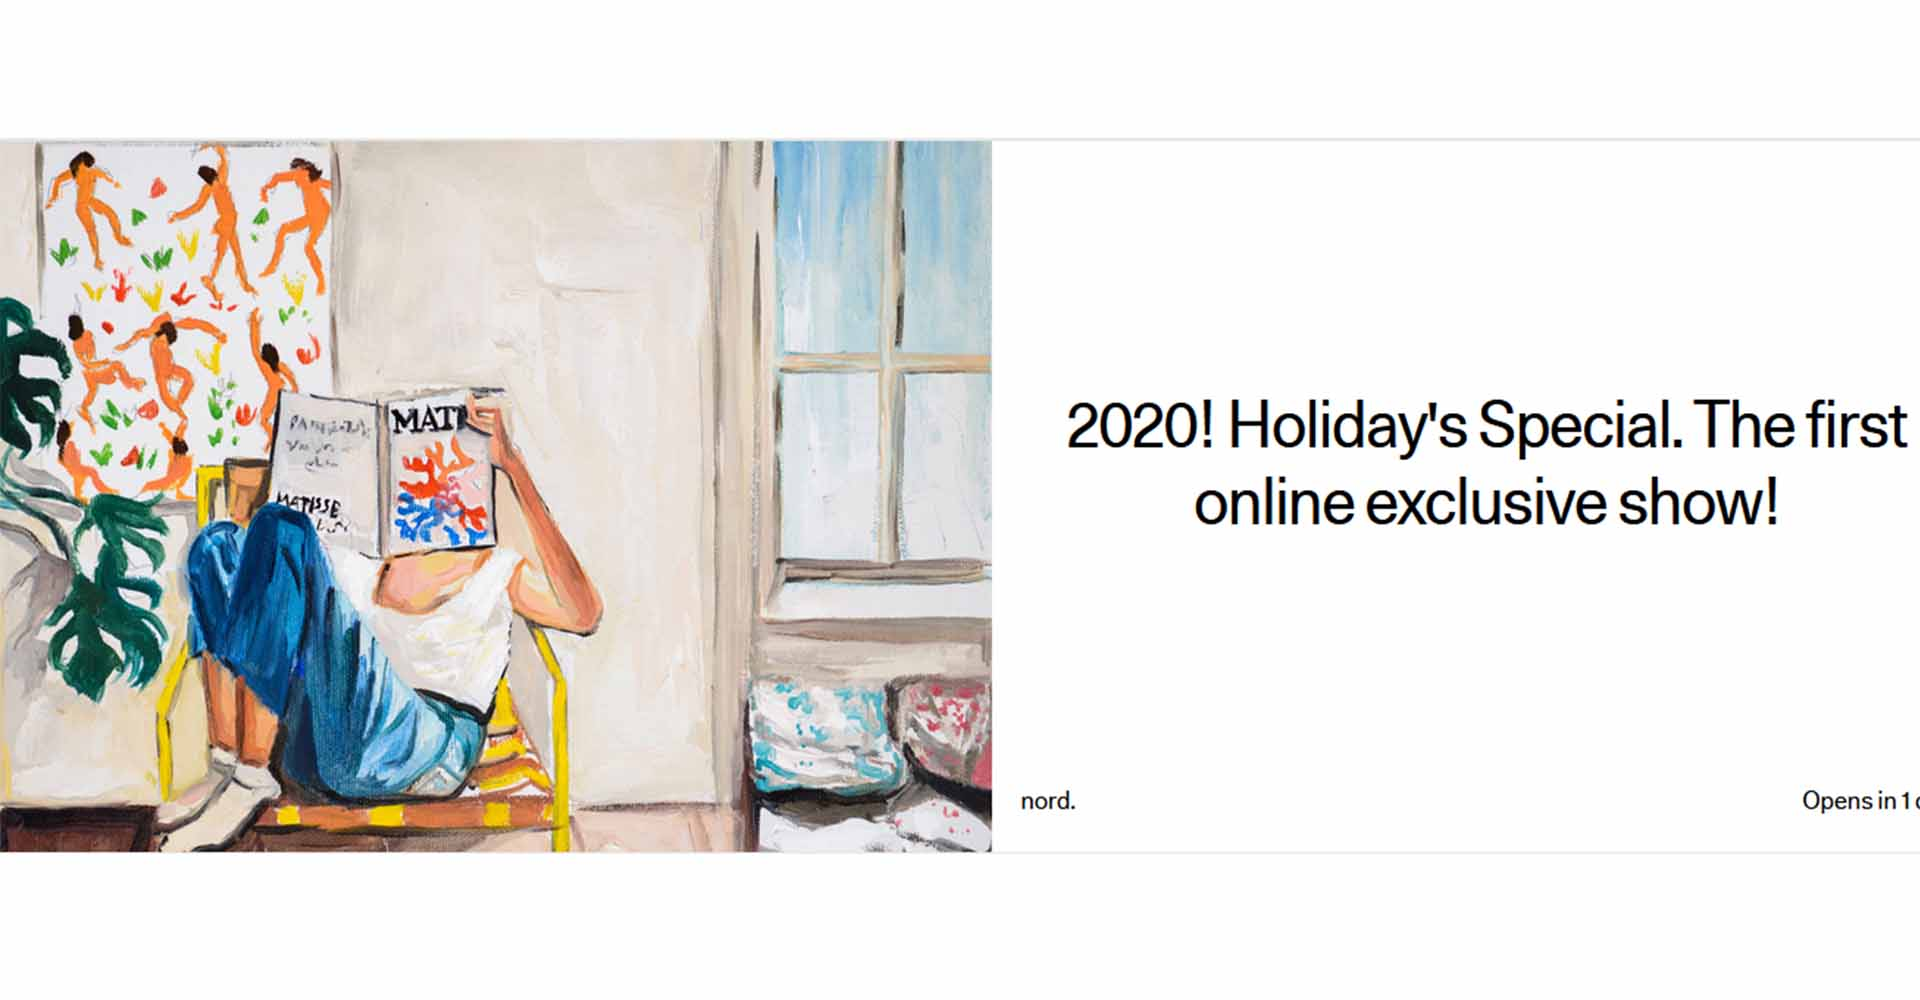 2020! Holiday's Special. The first online exclusive show!